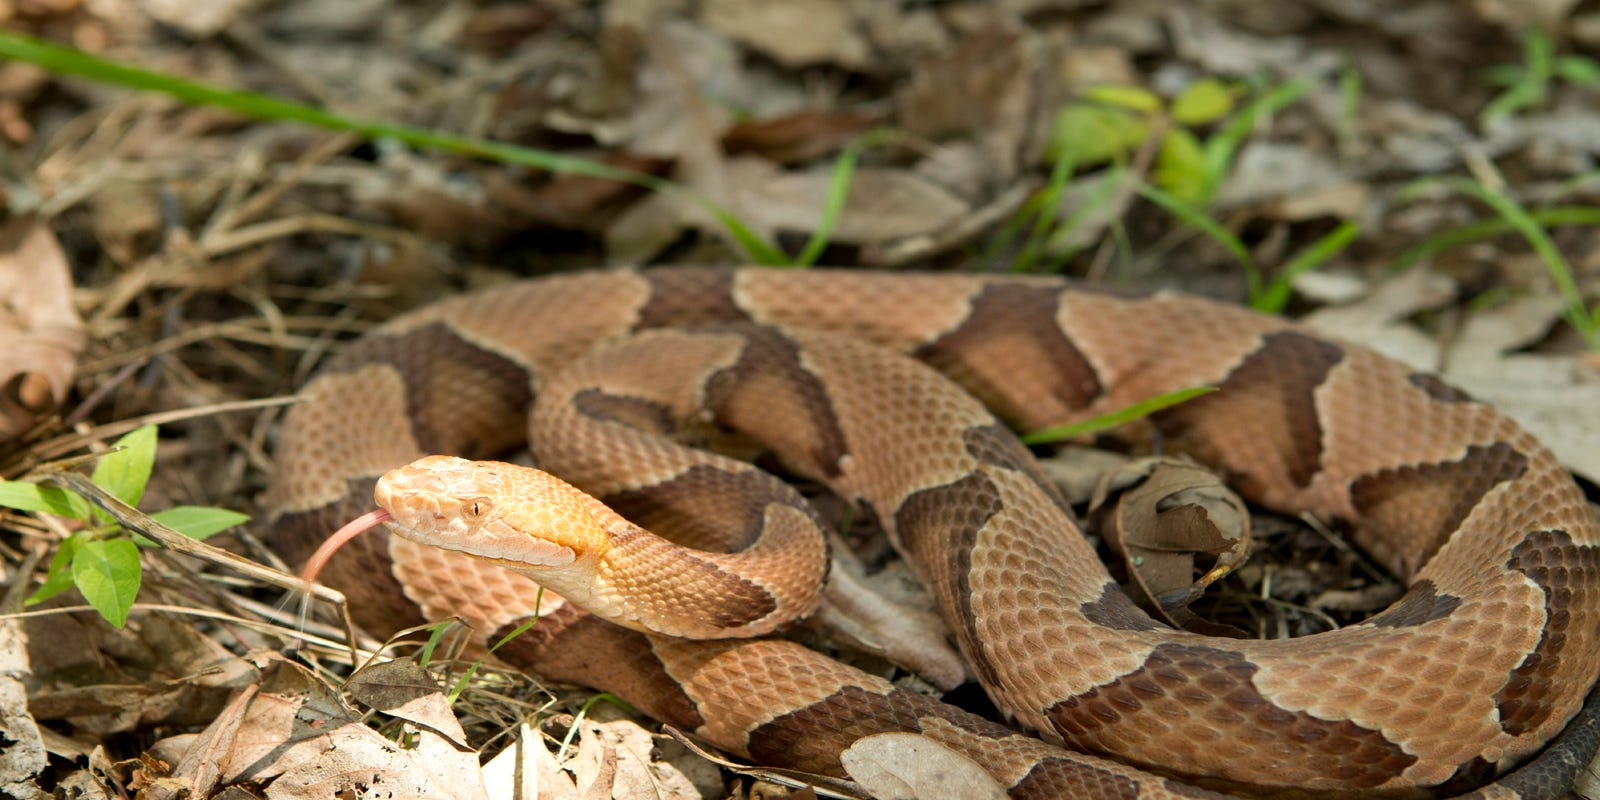 Experts offer SC residents advice on avoiding copperhead ... on texas copperhead snake map, rattlesnake range map, cherskogo range map, copperhead snakes in west tennessee, snakes in ohio map, copperhead and cottonmouth snakes, cottonmouth snake territory map, poisonous snakes in illinois map, copperhead snakes southern illinois, pied-billed grebe range map, copperhead yardage book, coywolf range map, pa rattlesnake map, cottonmouth water moccasin range map, northern copperhead snake map, snakes habitat map, southern leopard frog range map, copperhead snakes in alabama, blue-ringed octopus range map, copperhead snakes in south carolina,